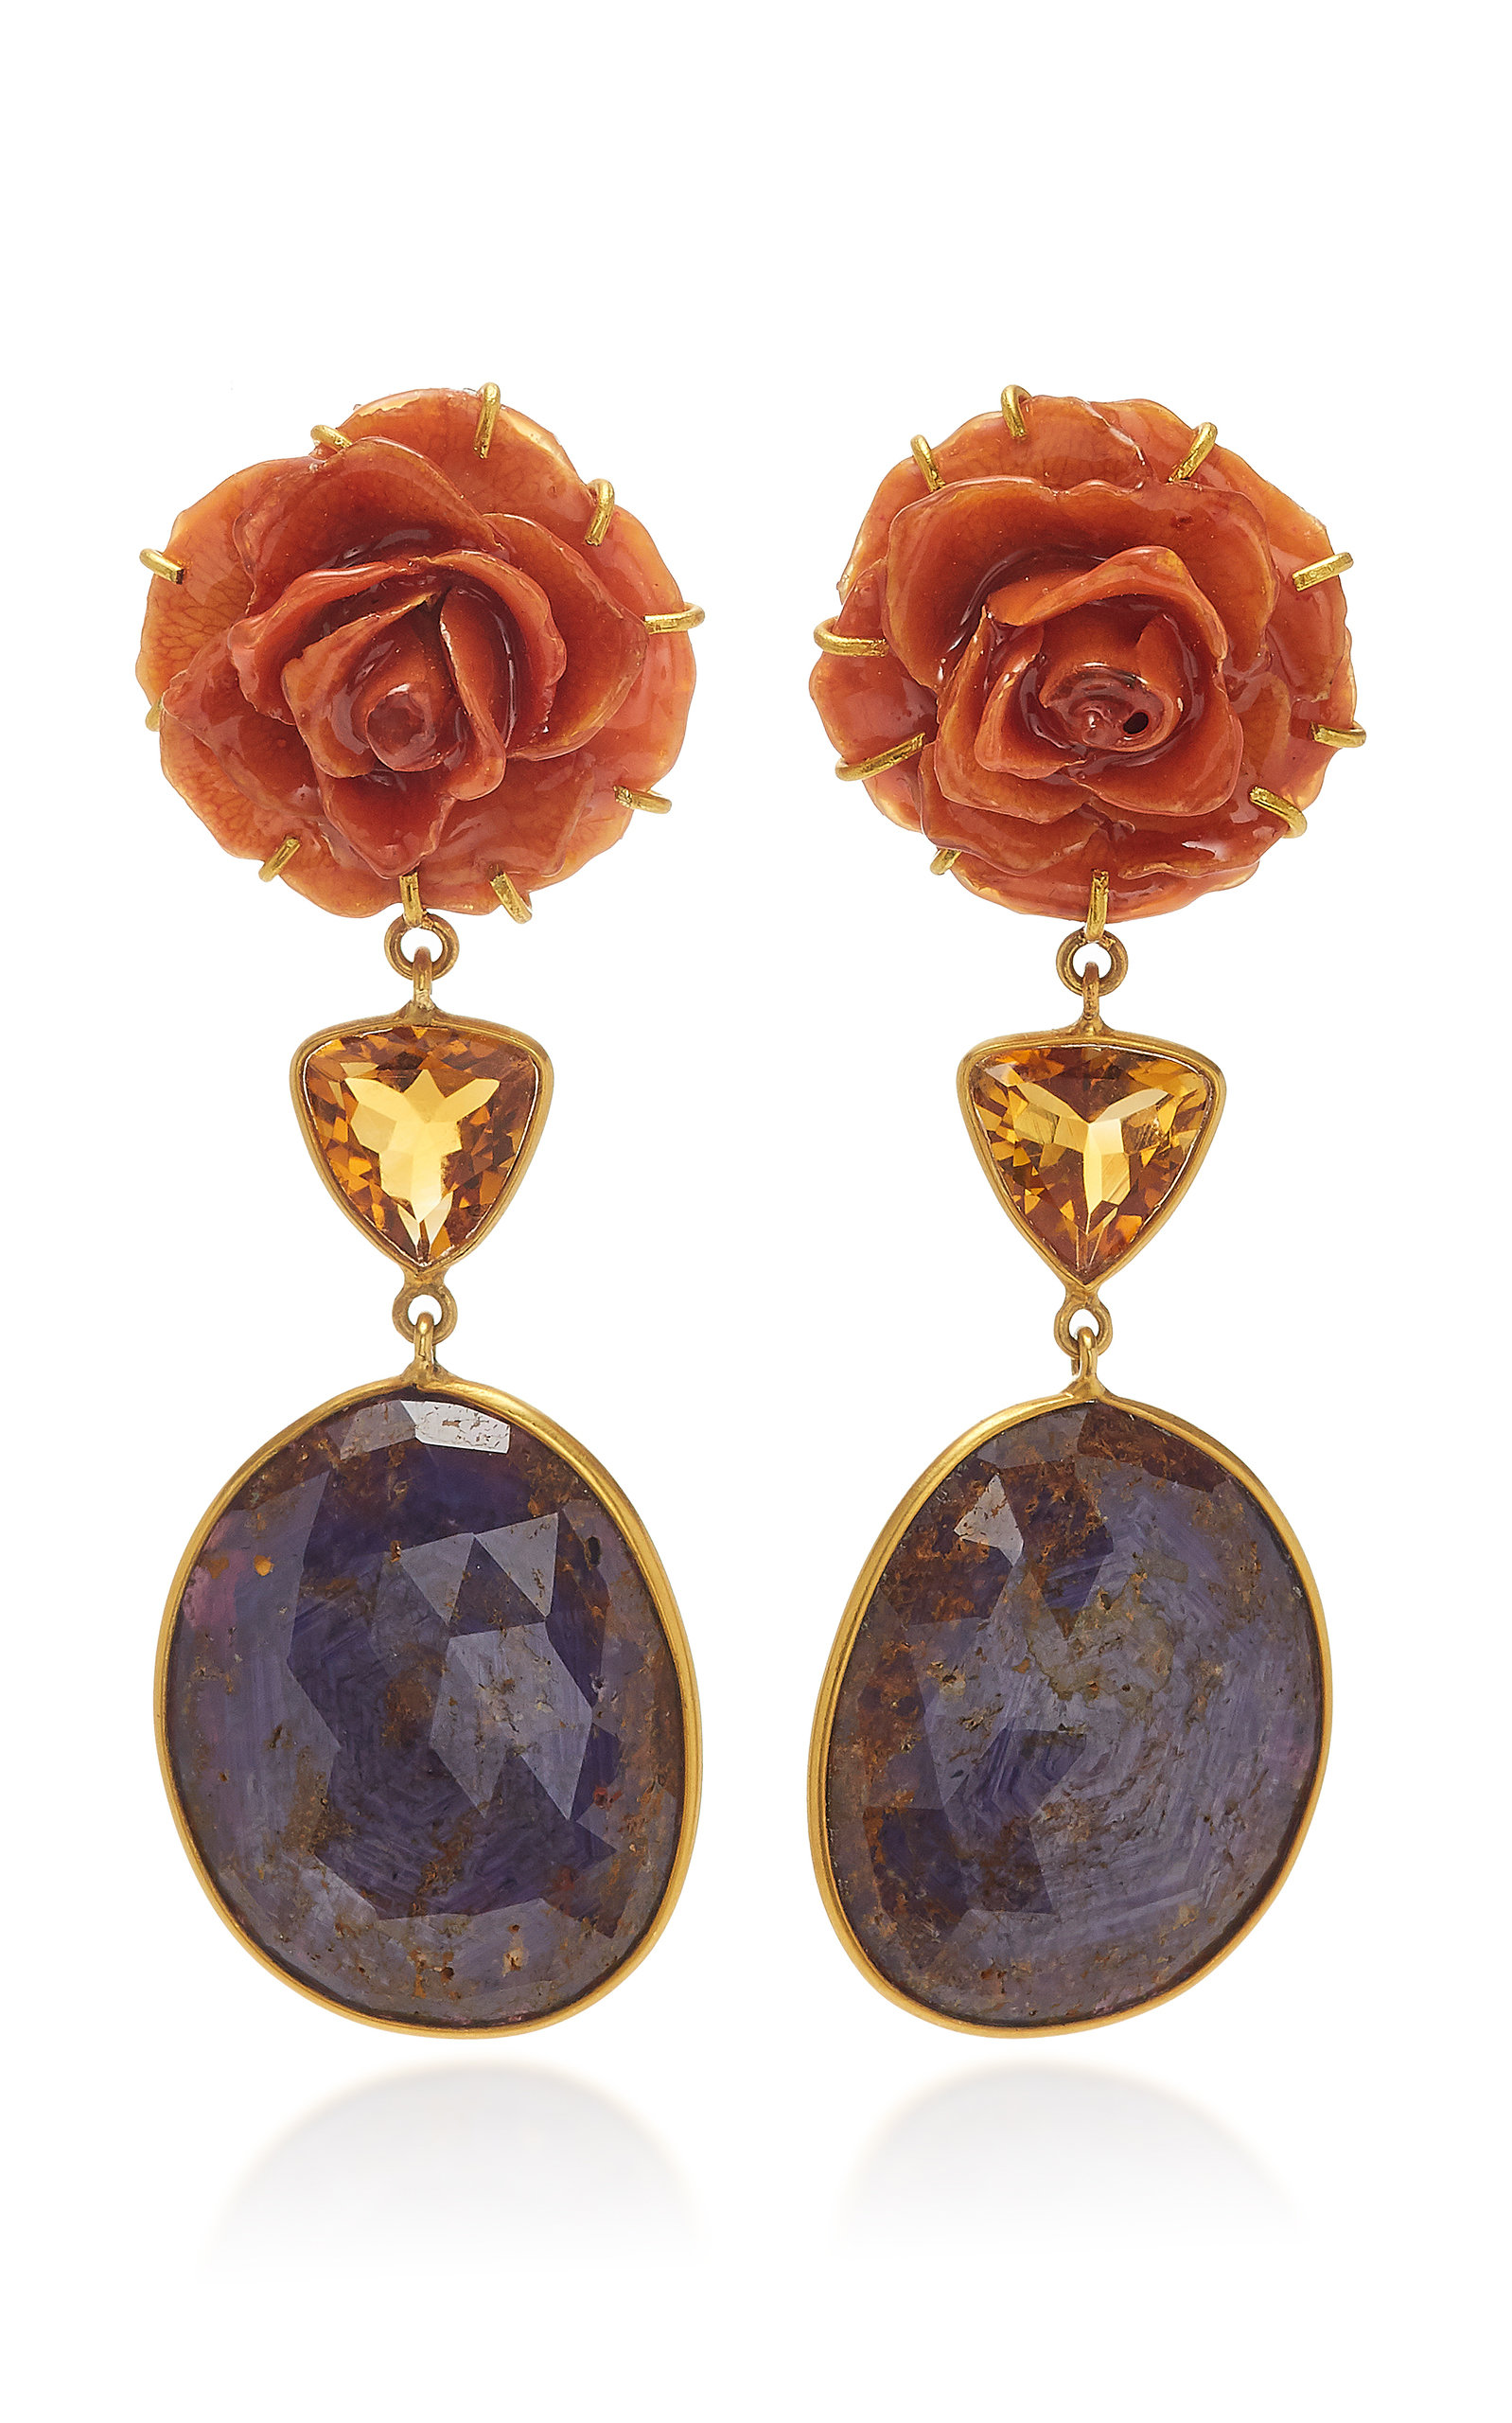 BAHINA 18K Gold Rose Citrine And Sapphire Earrings in Blue